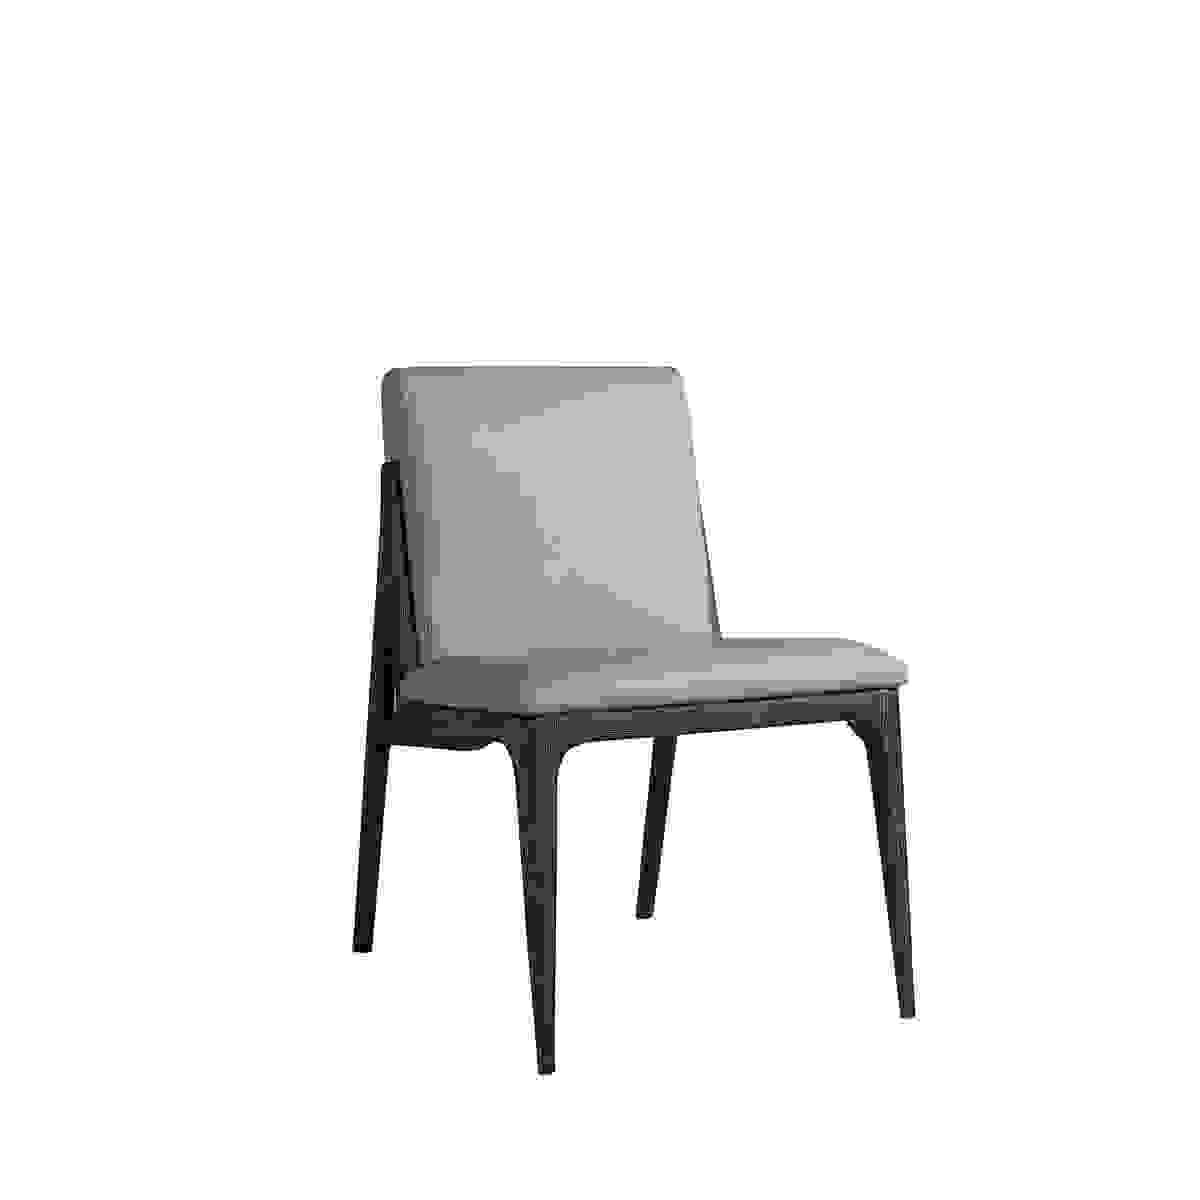 coleccion-alexandra-the-one-collection-shi-chair-03.jpg